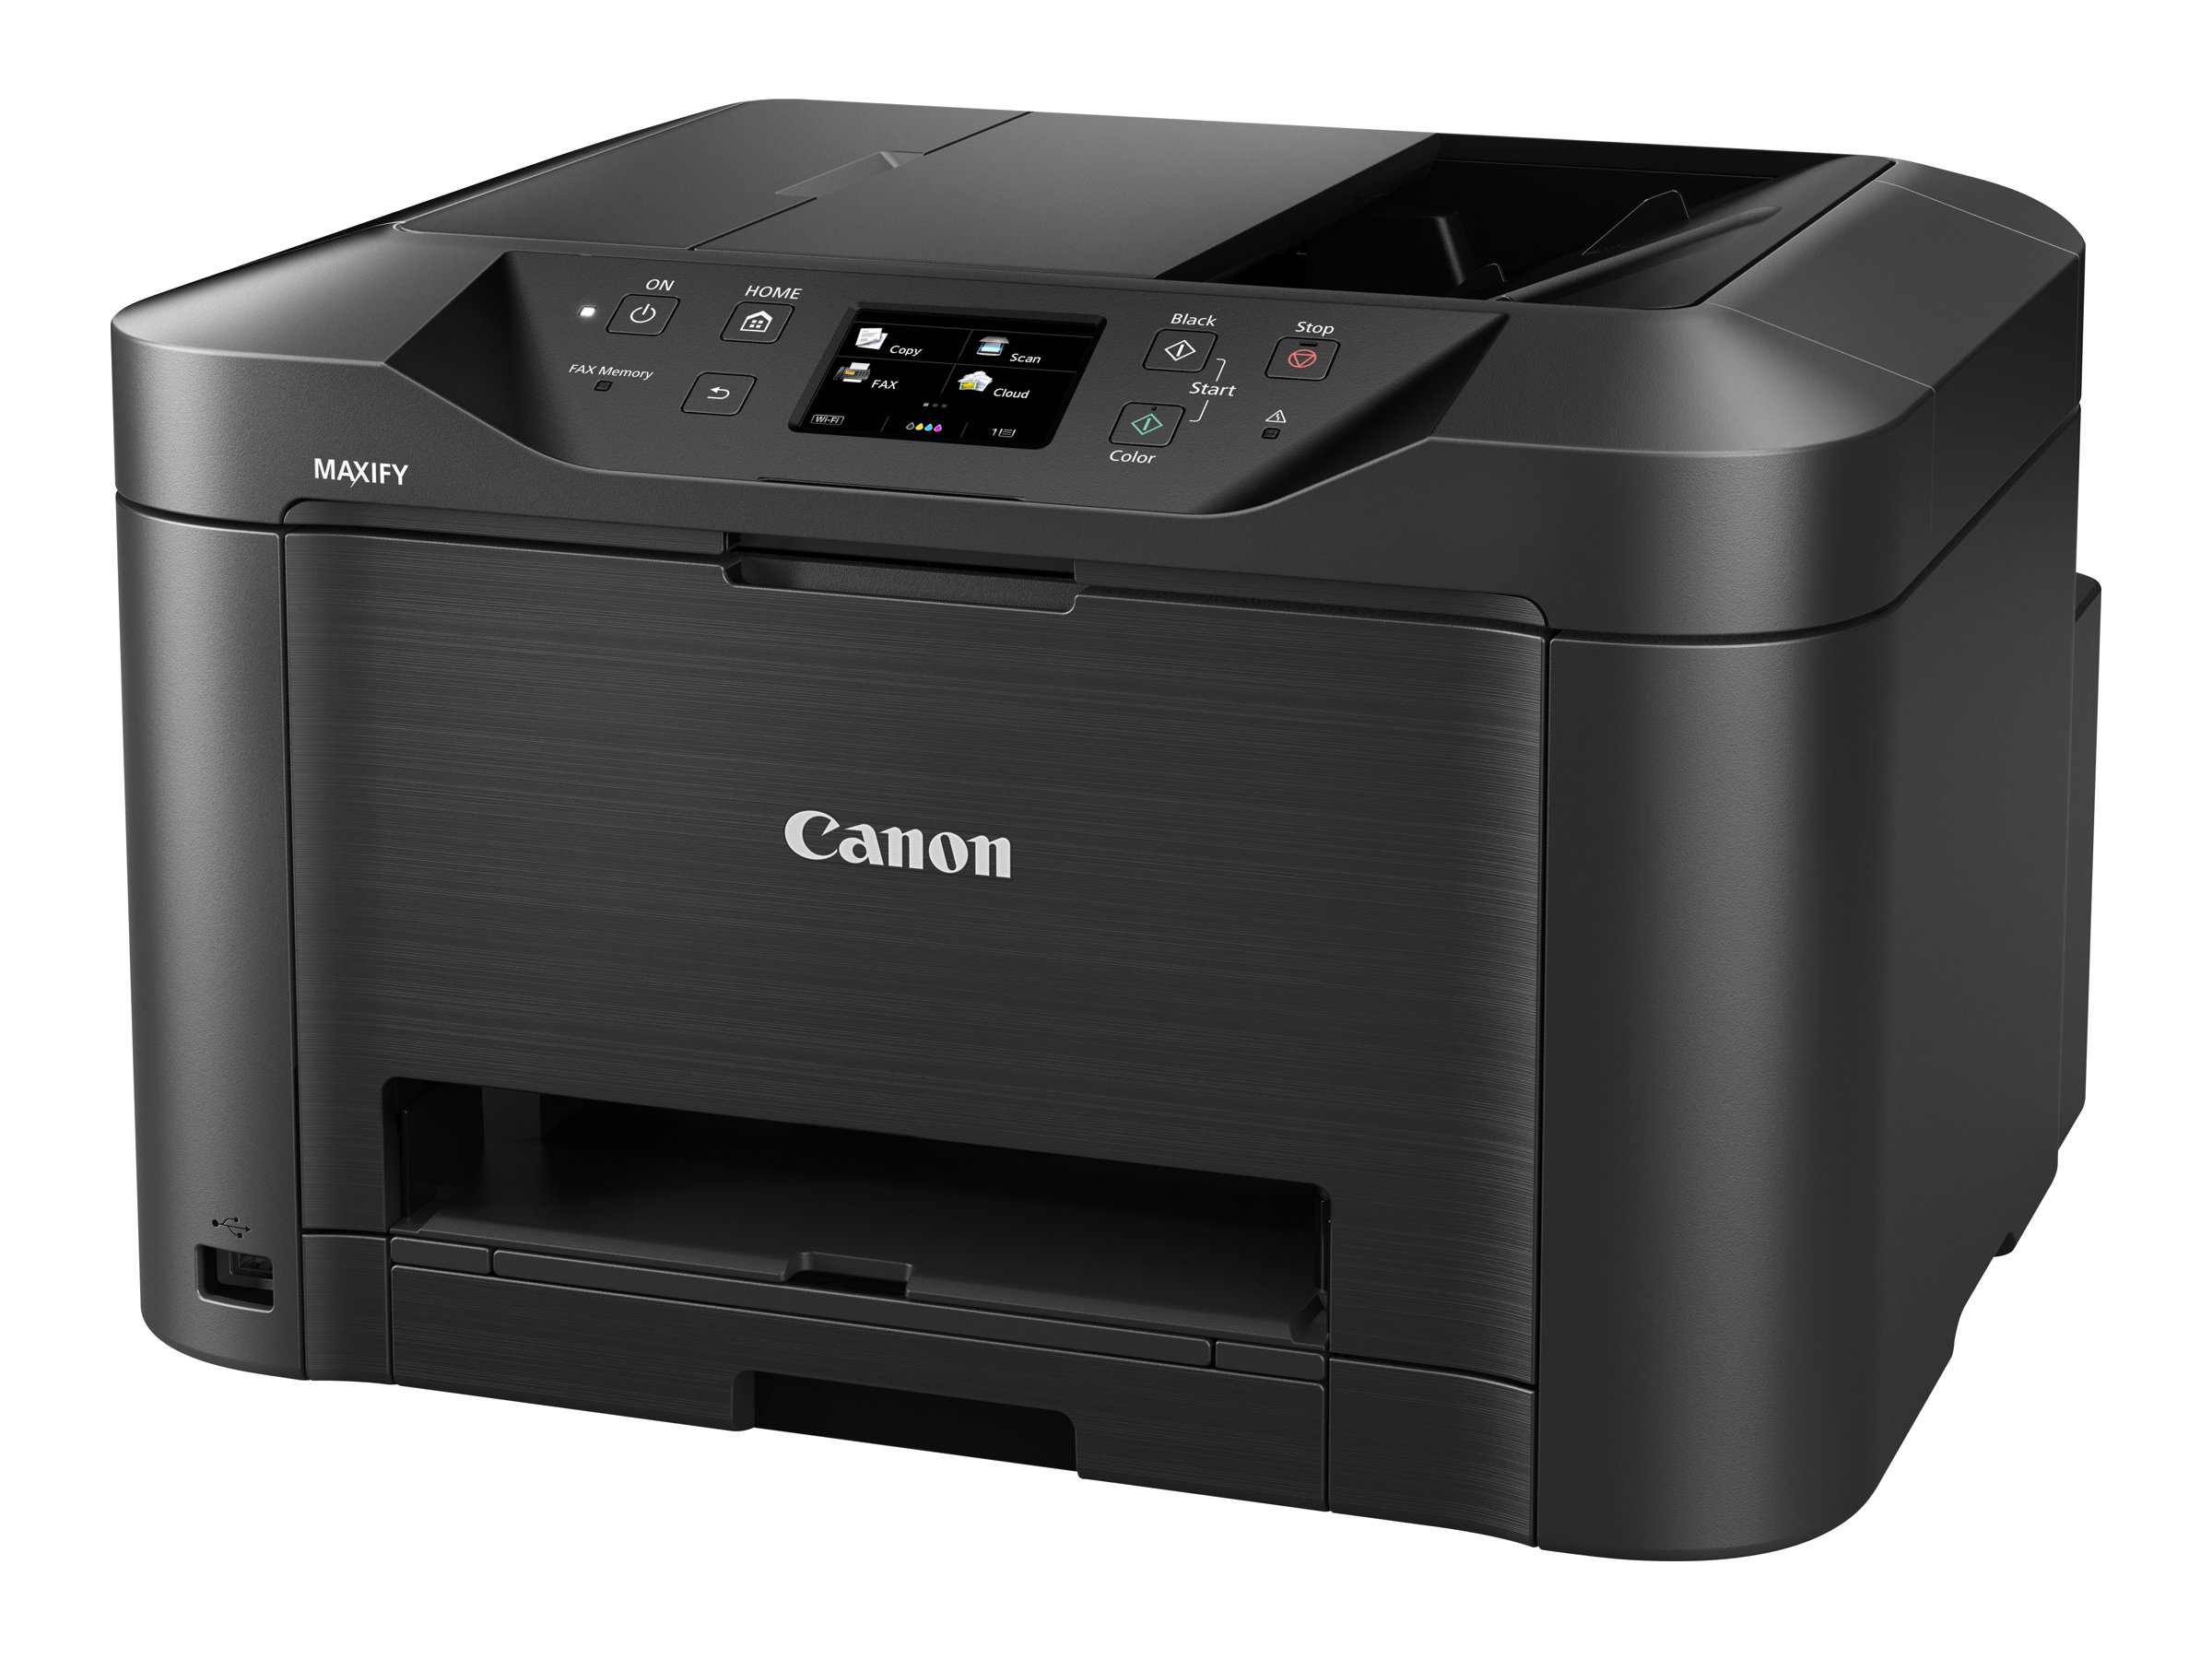 Canon MAXIFY MB5050 - Multifunktionsdrucker - Farbe - Tintenstrahl - A4 (210 x 297 mm), Legal (216 x 356 mm) (Original) - A4/Legal (Medien)